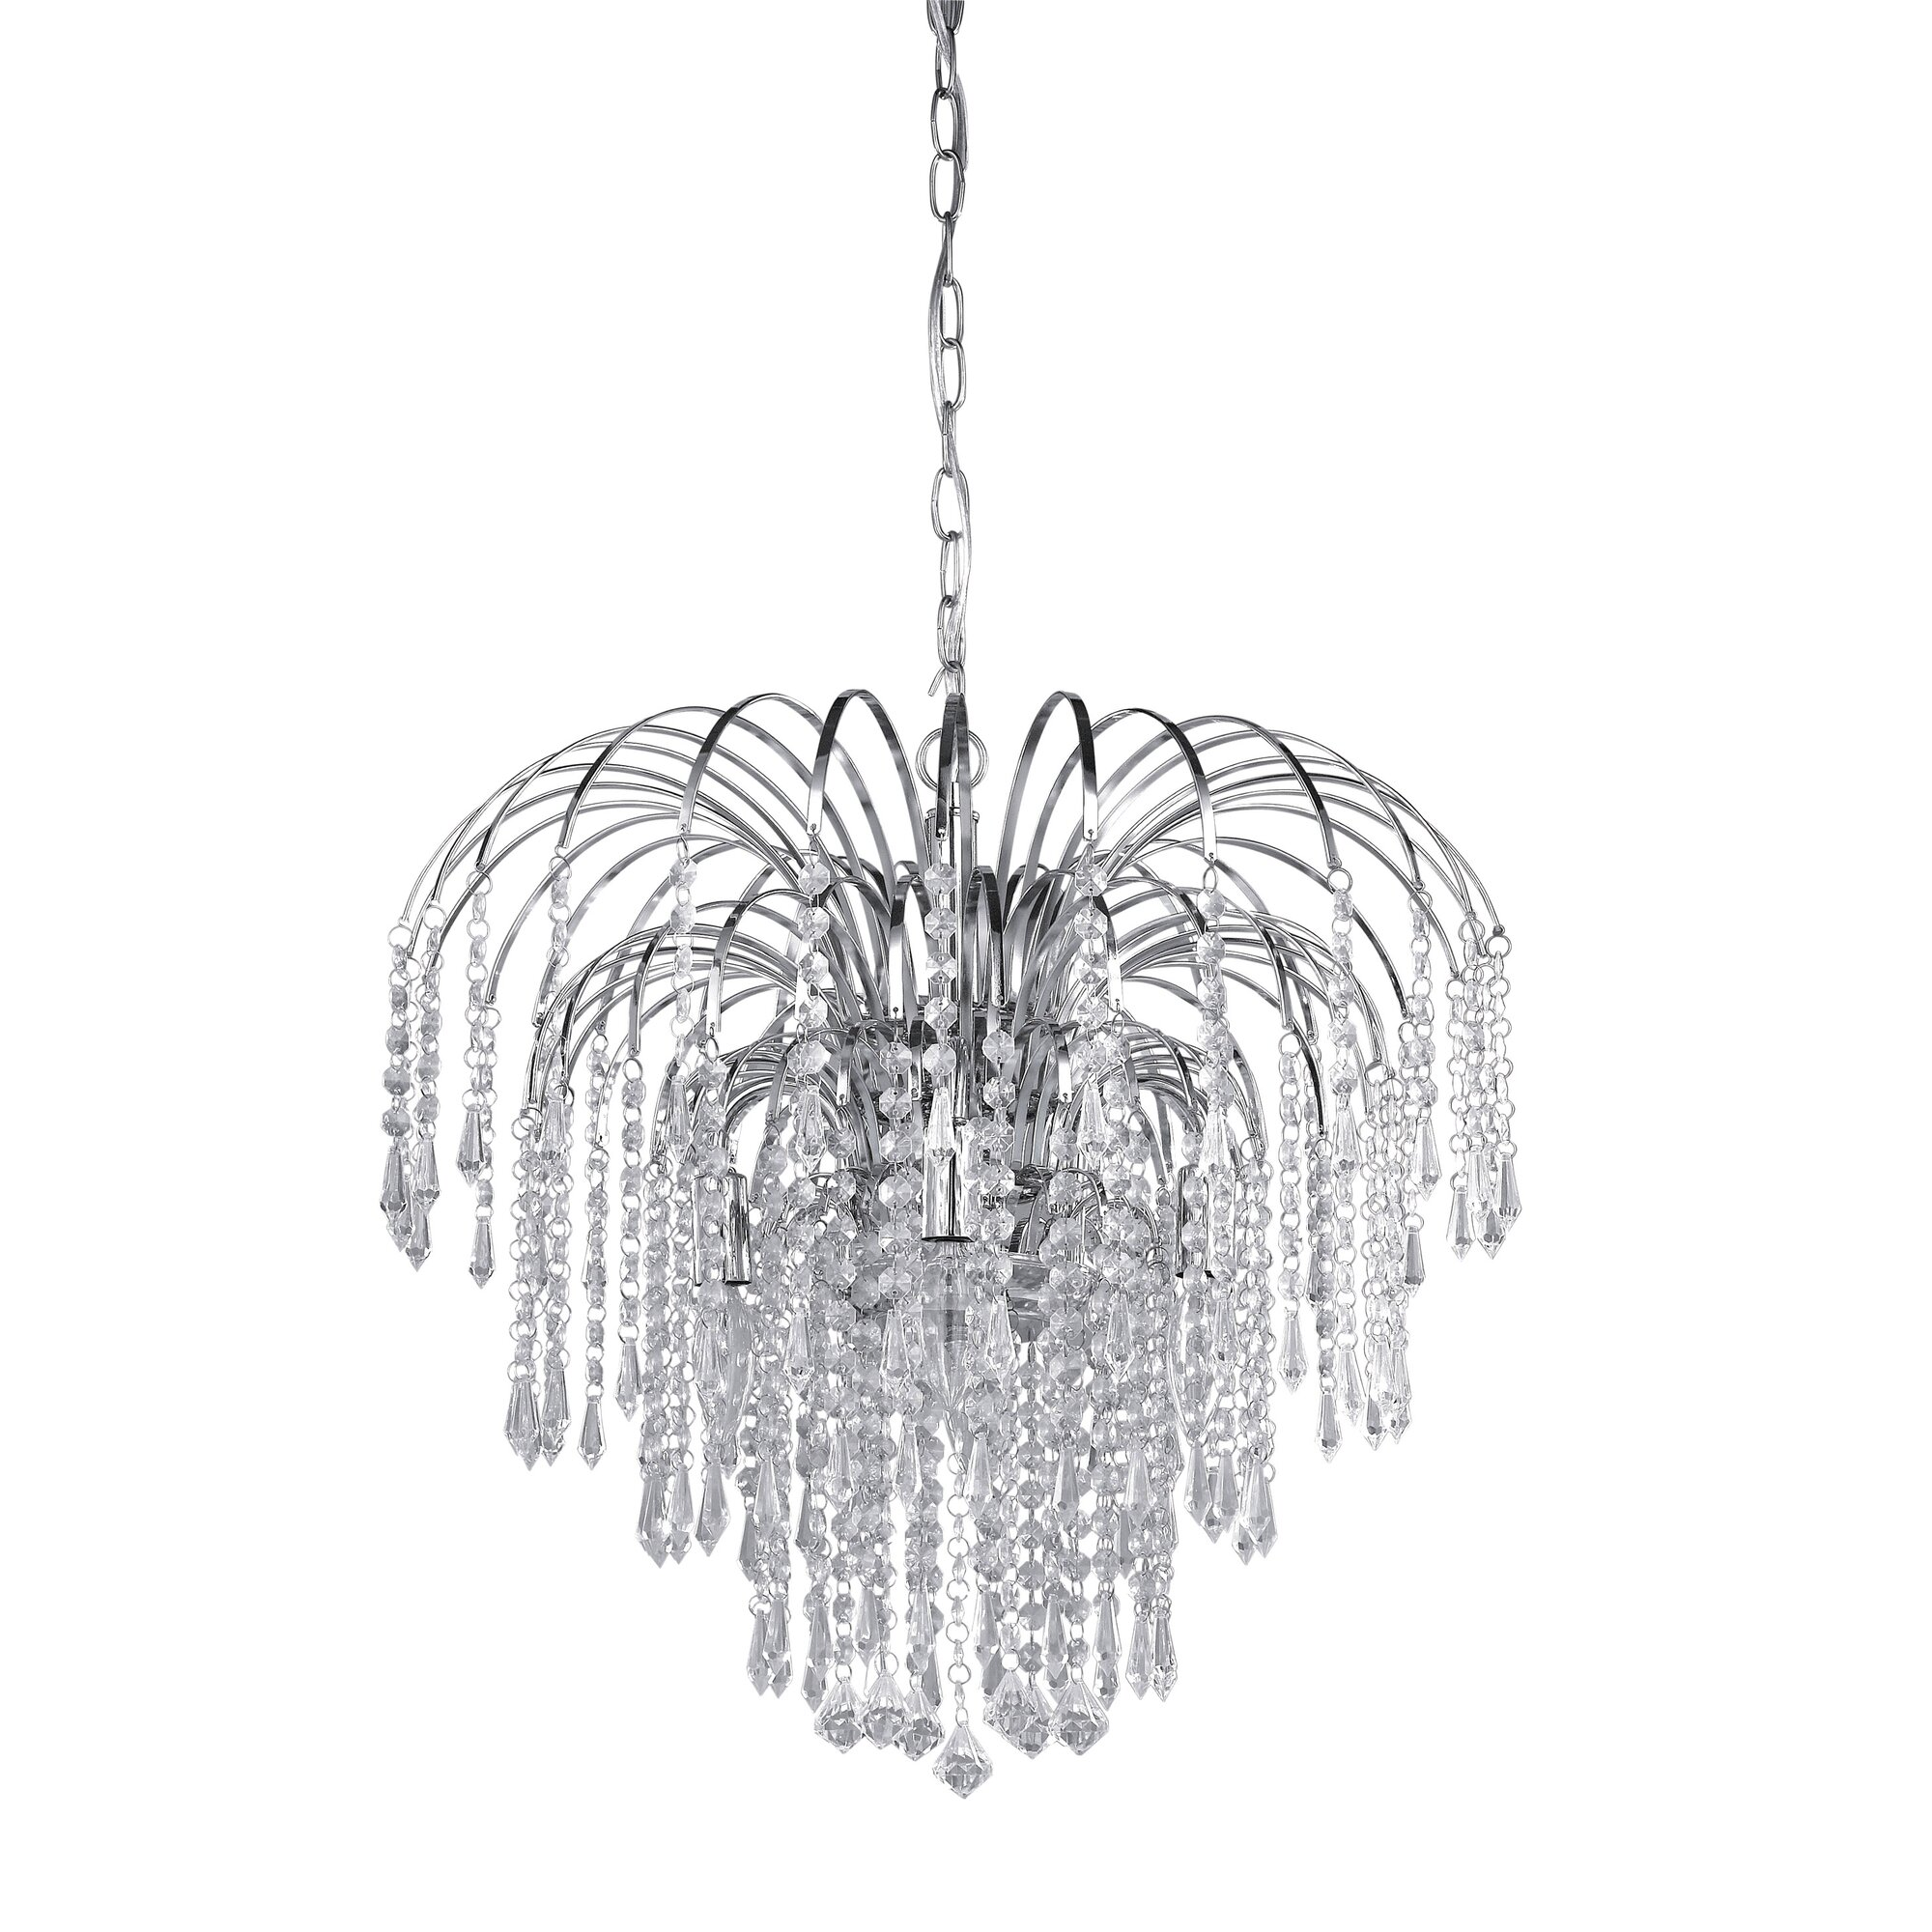 Amusing Chandelier Chords James Arthur Ideas - Chandelier Designs ...